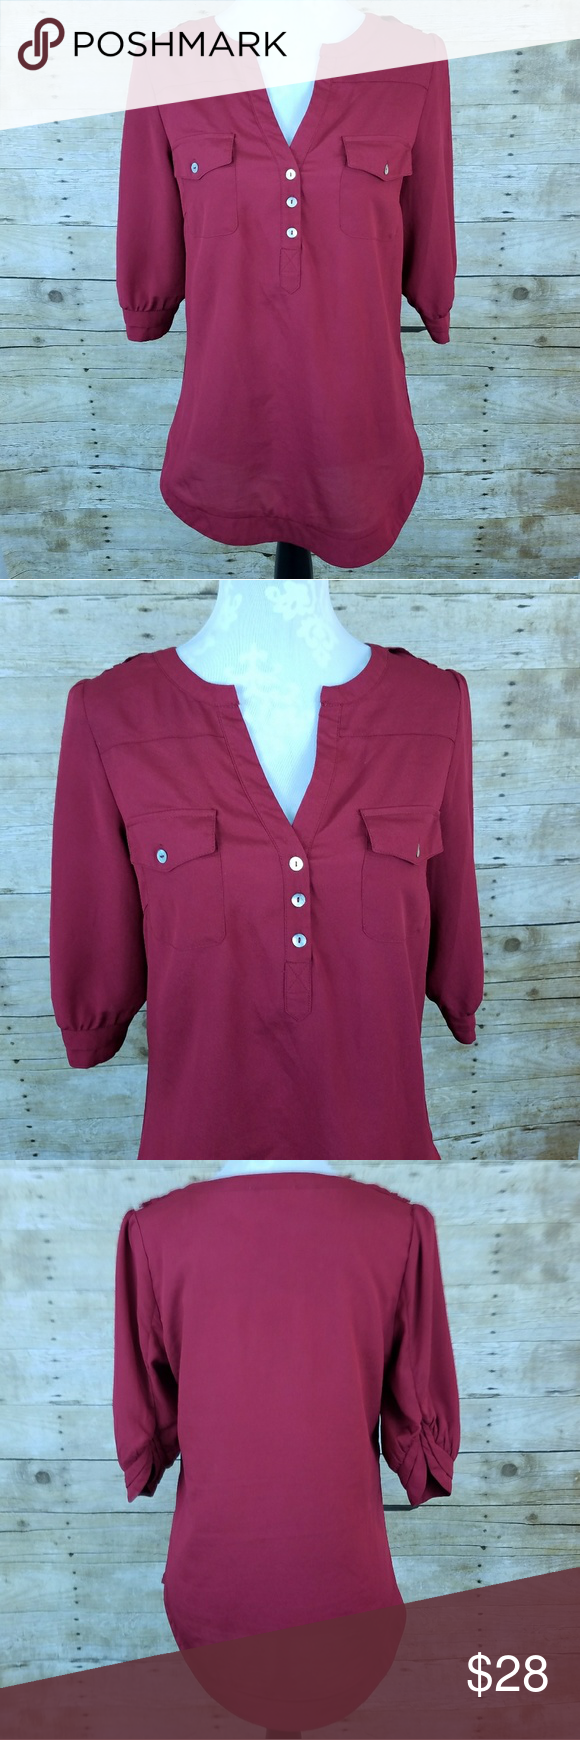 "41 Hawthorne Stitch Fix Red Filbert Popover Top Women's 41 Hawthorne ""Filbert"" Blouse 100% polyester  Size medium Gently used EUC   Measurements laying flat:  Shoulder to shoulder: 14"" Underarm to underarm: 17"" Length: 27"" 41 Hawthorne Tops Blouses"